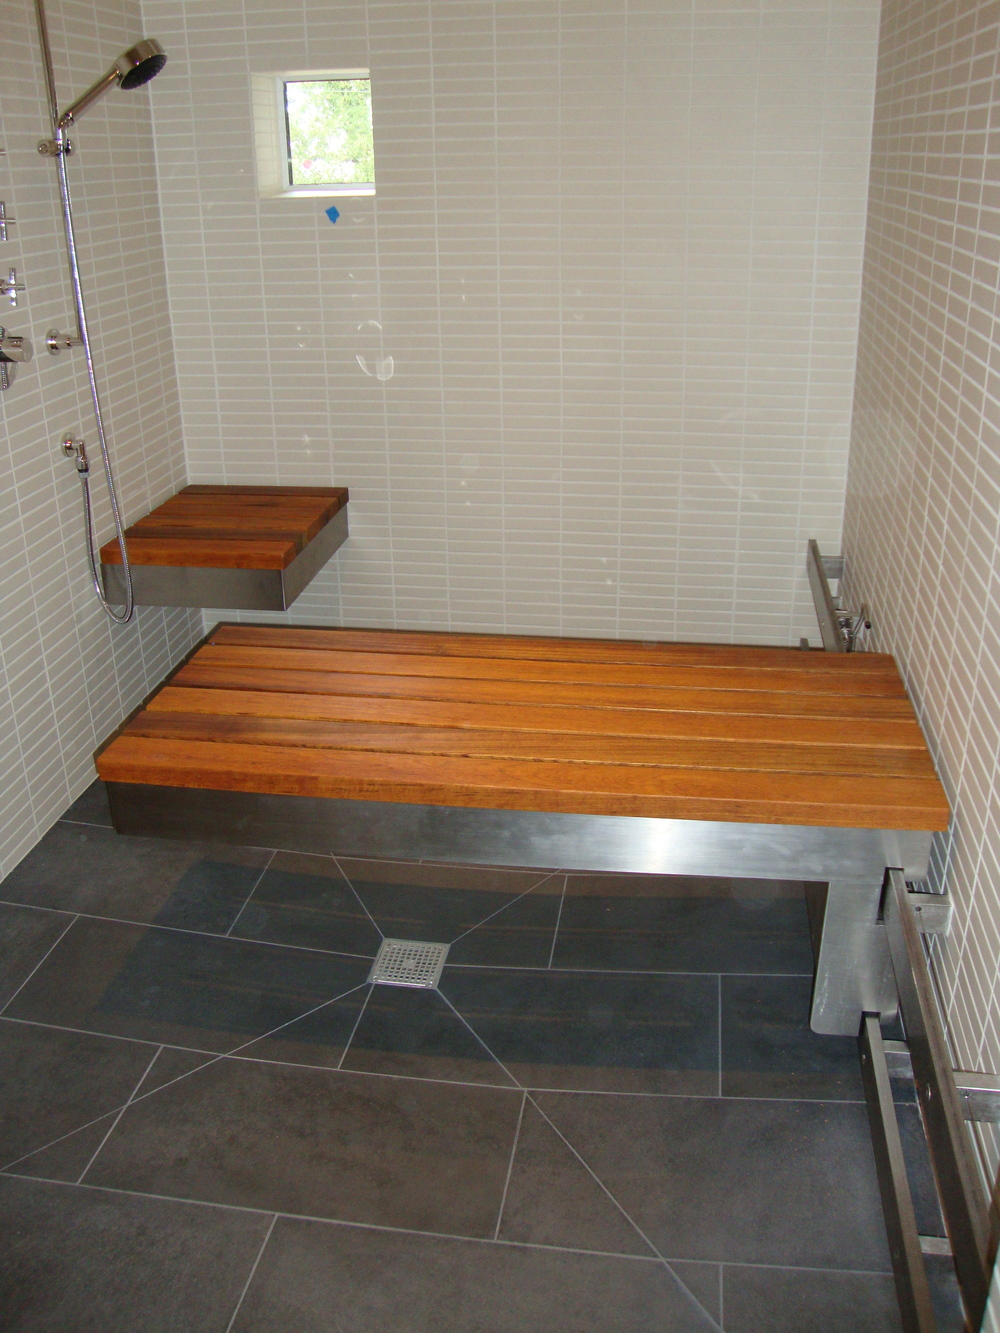 Shower_Bench_I_DSC00975.JPG